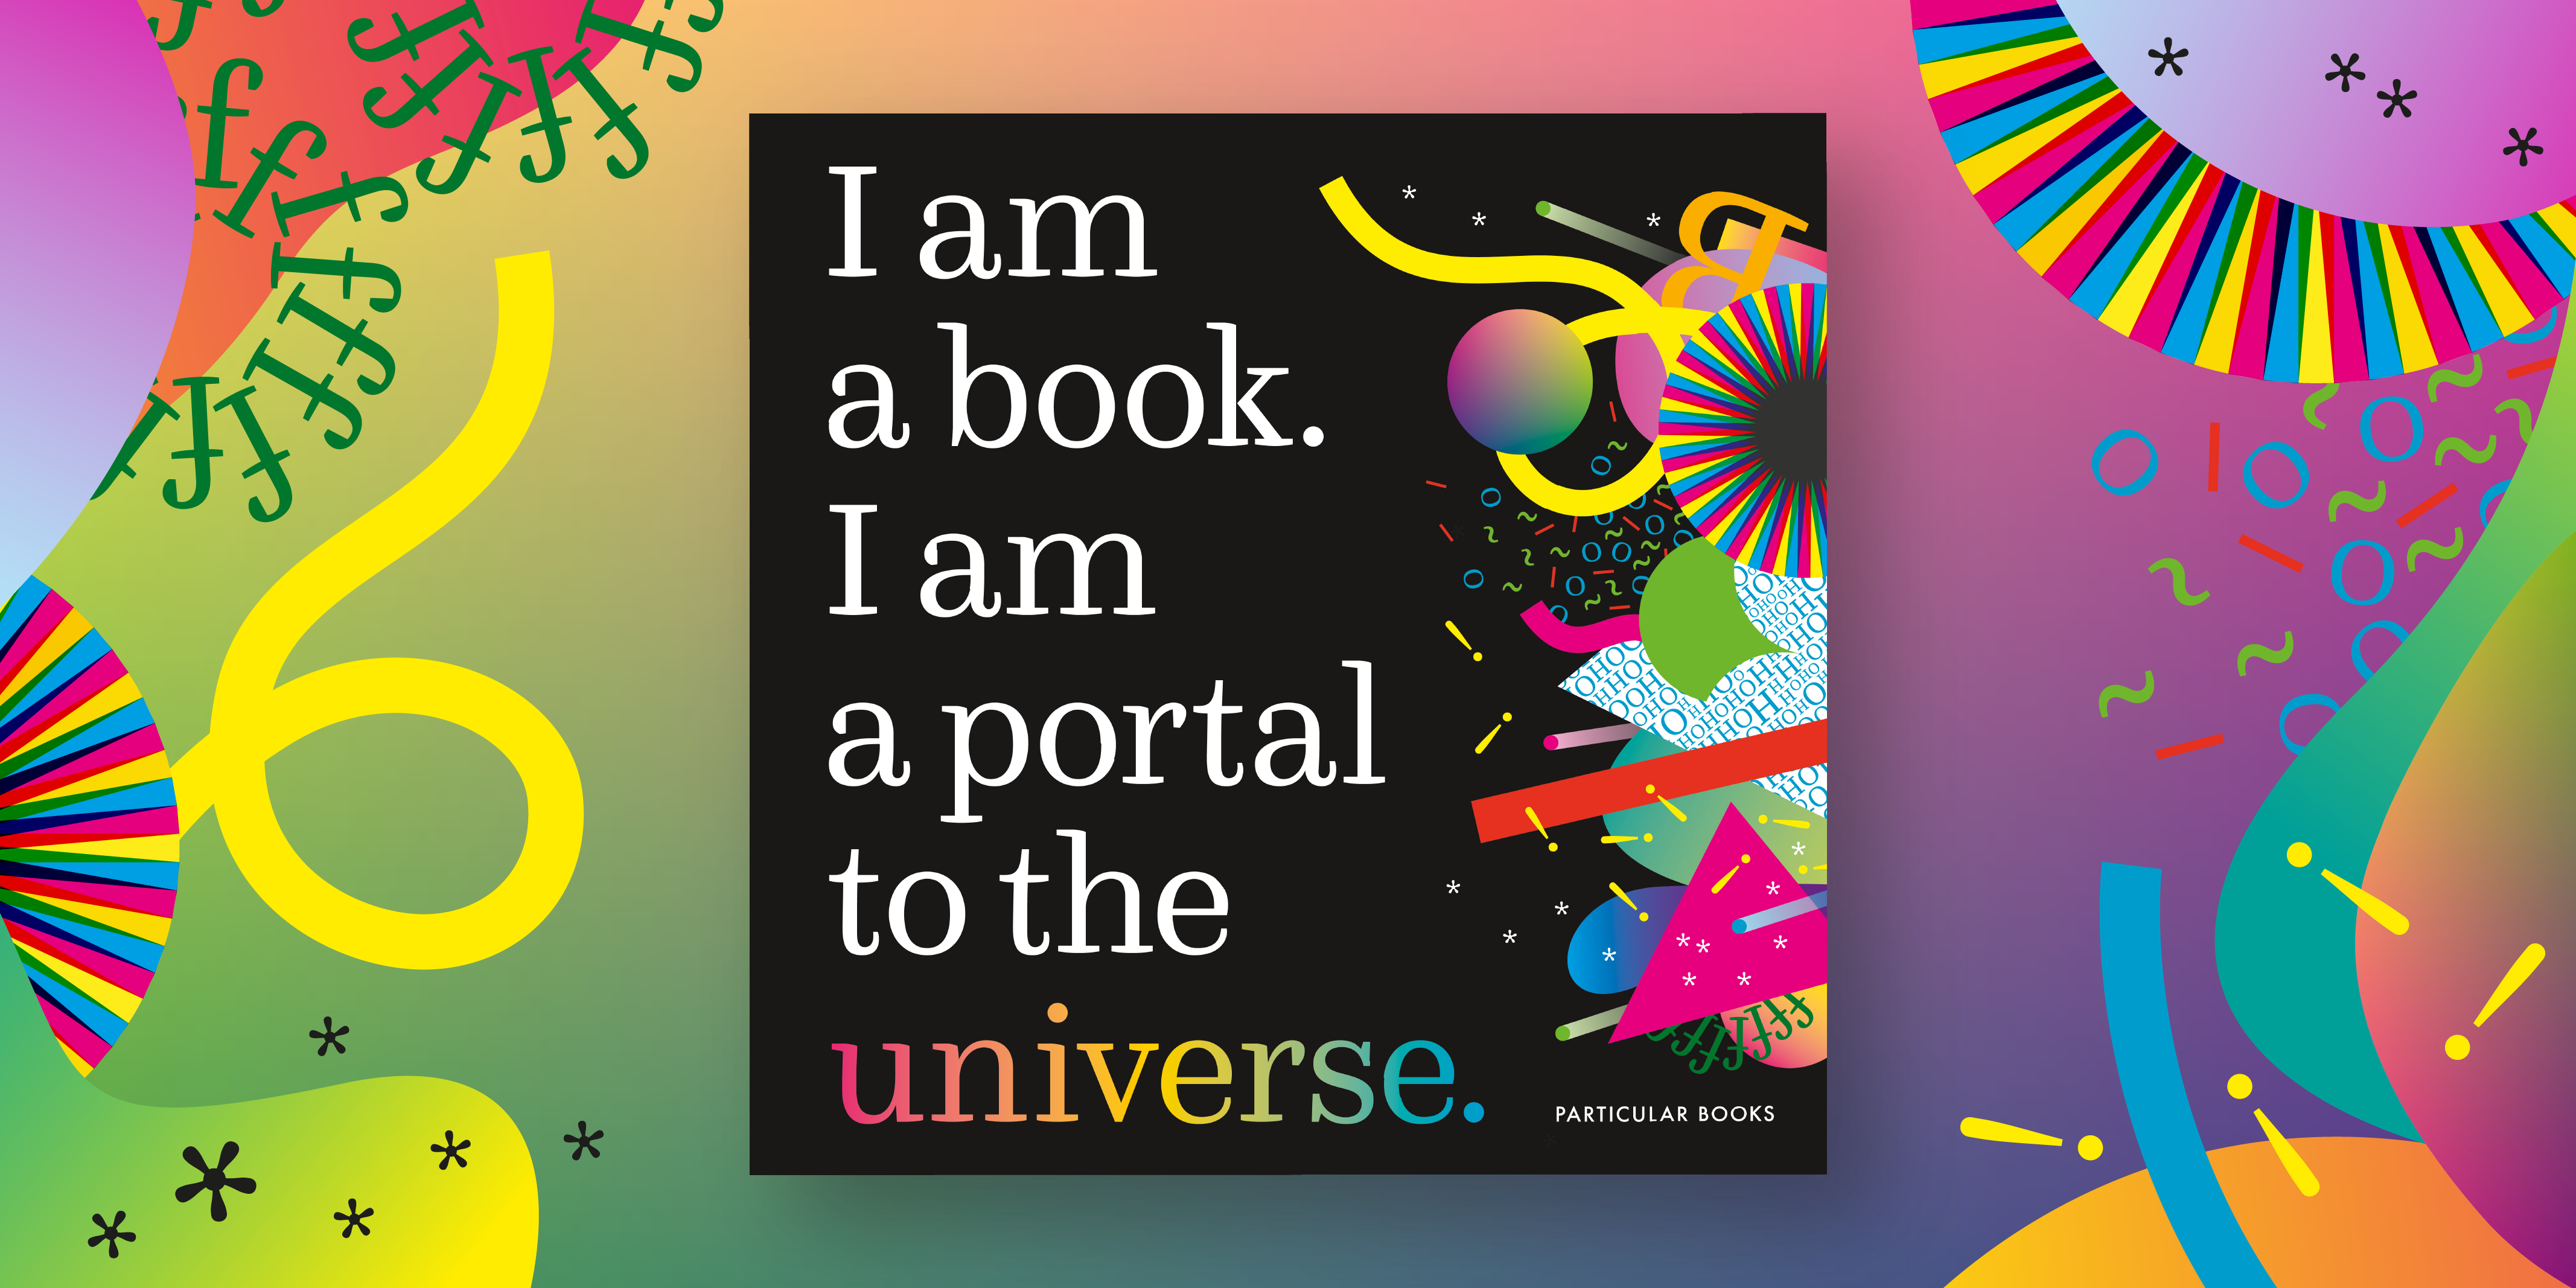 Cover of 'I am a book. I am a portal to the universe.' by Stefanie Posavec and Miriam Quick